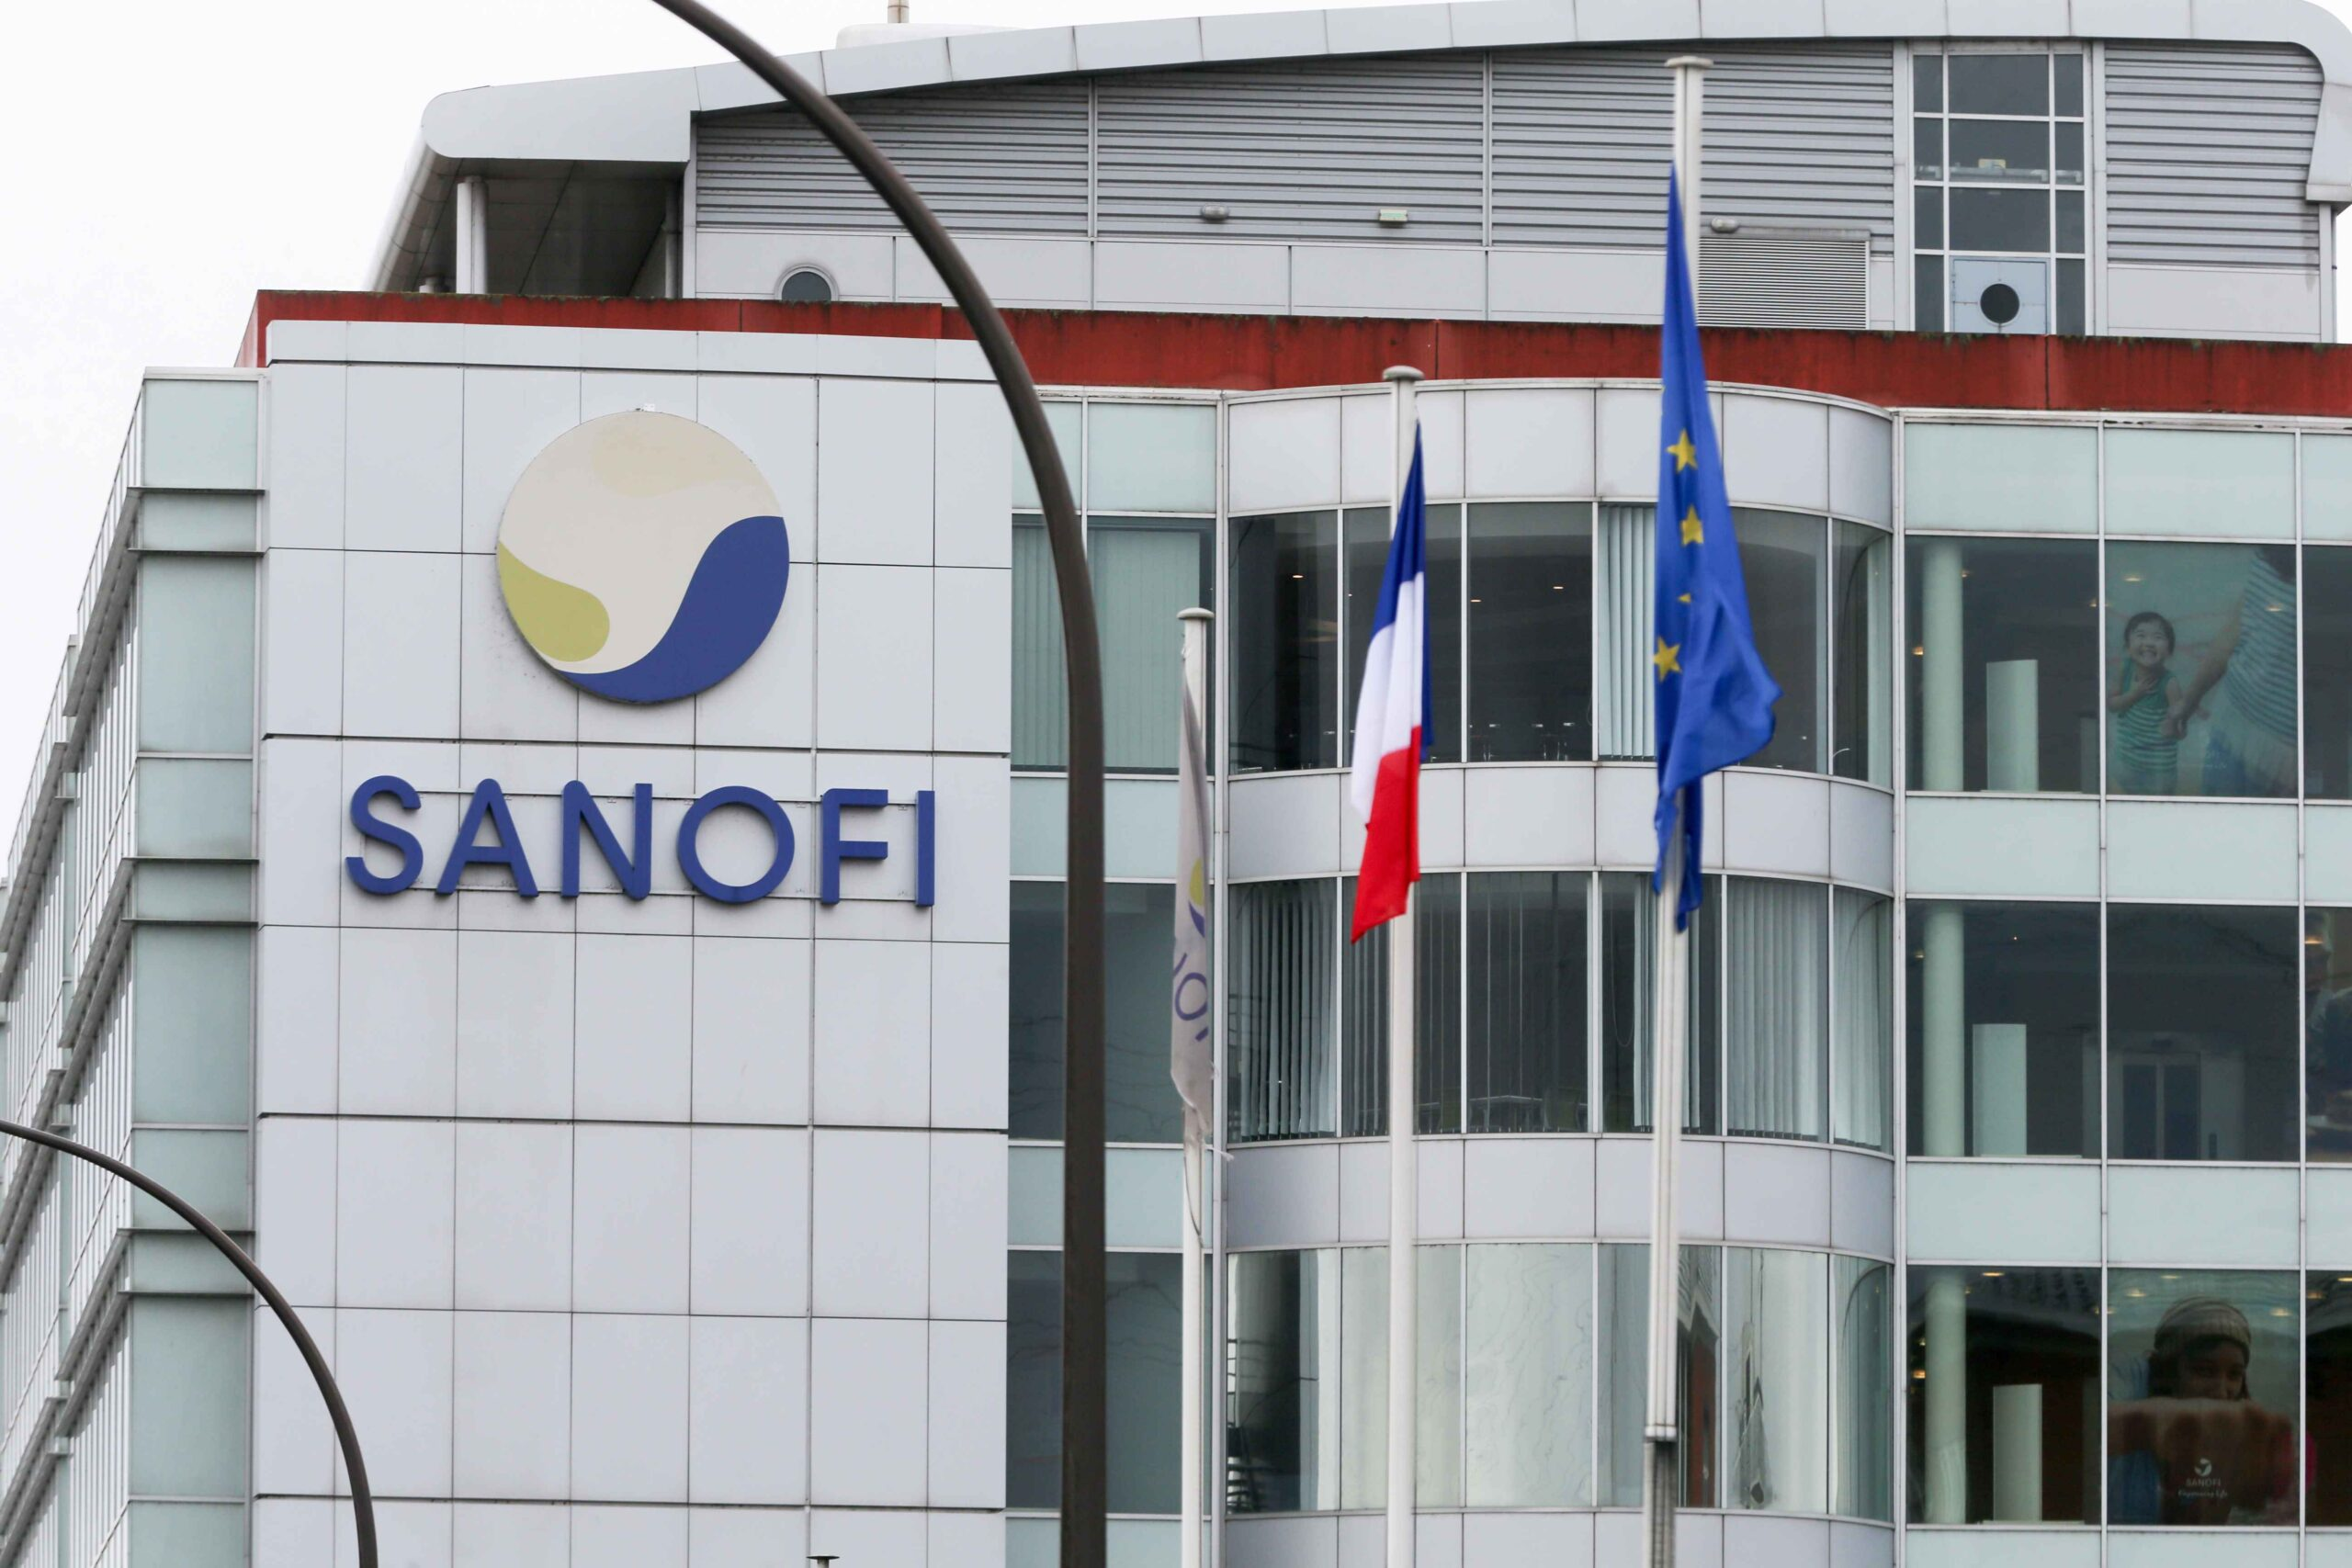 This picture taken on January 19, 2021 shows the production and Research & Development, platform in the biotechnology facility of the French pharmaceutical industry company Sanofi in Vitry-sur-Seine, a Paris suburb. Sanofi, France's biggest pharmaceutica